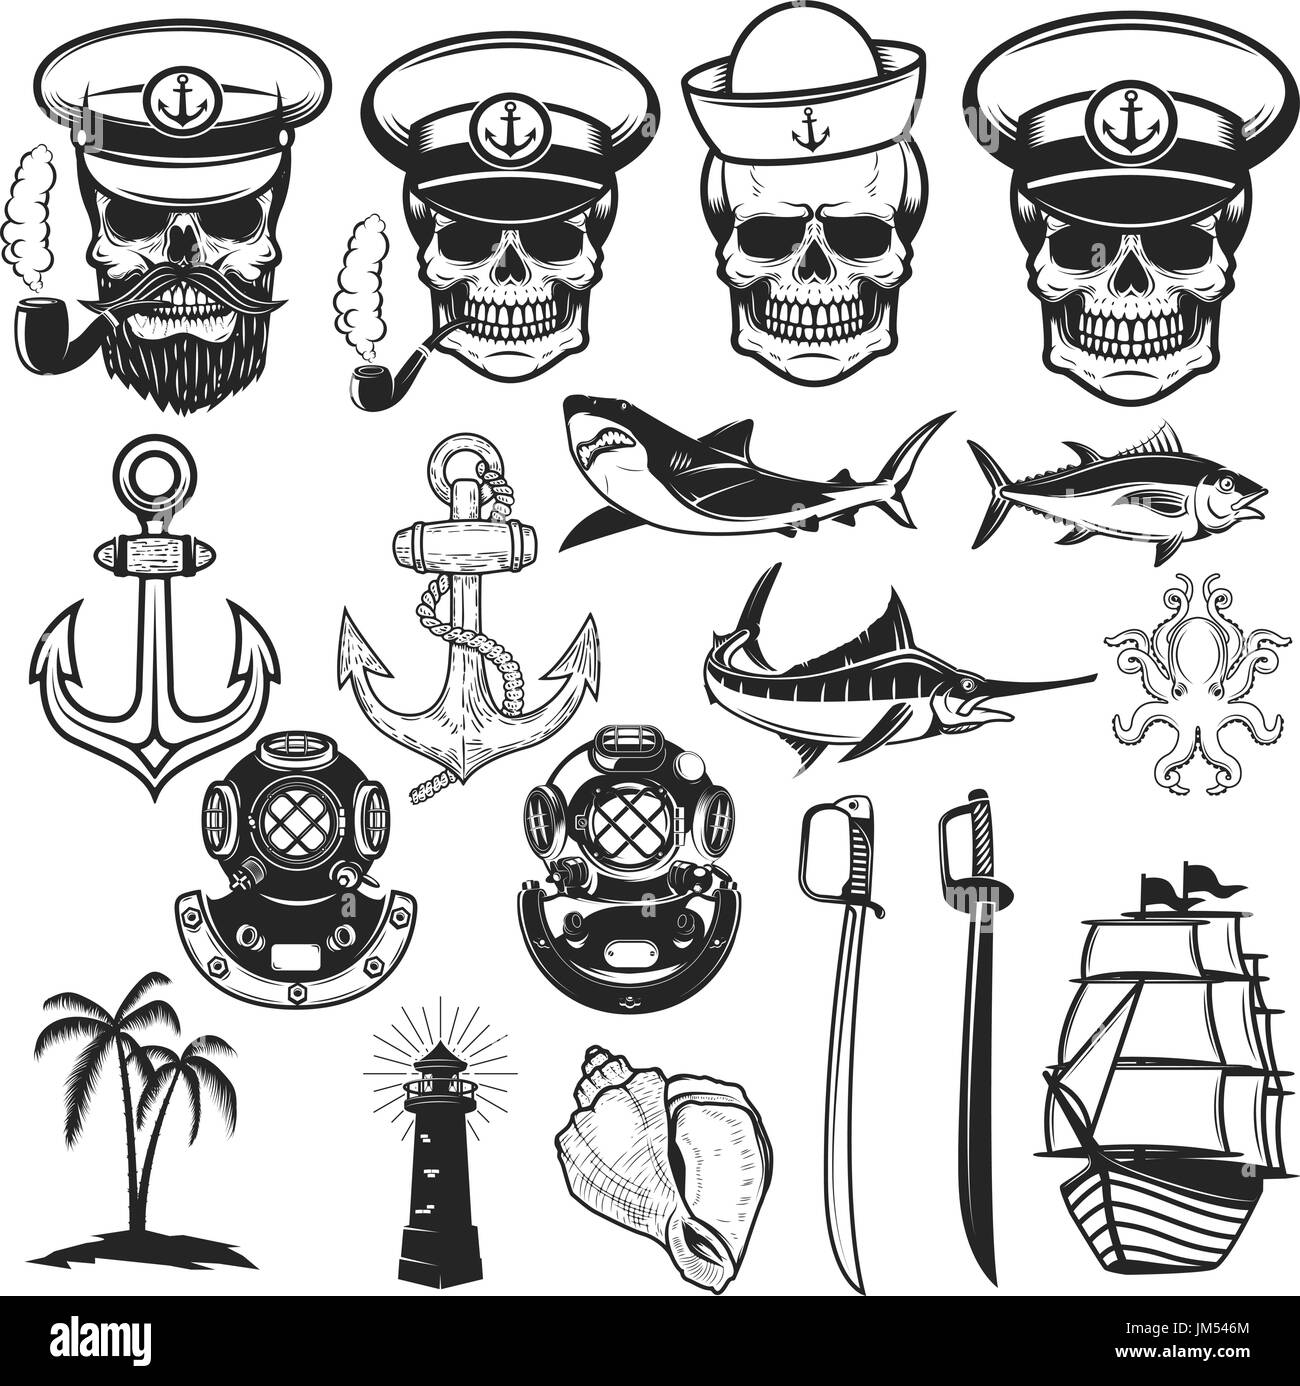 Sailor stock photos illustrations and vector art - Set Of Nautical Elements Anchor Fish Shark Ship Octopus Sailors Skulls Images For Logo Label Emblem Sign Poster Vector Illustration